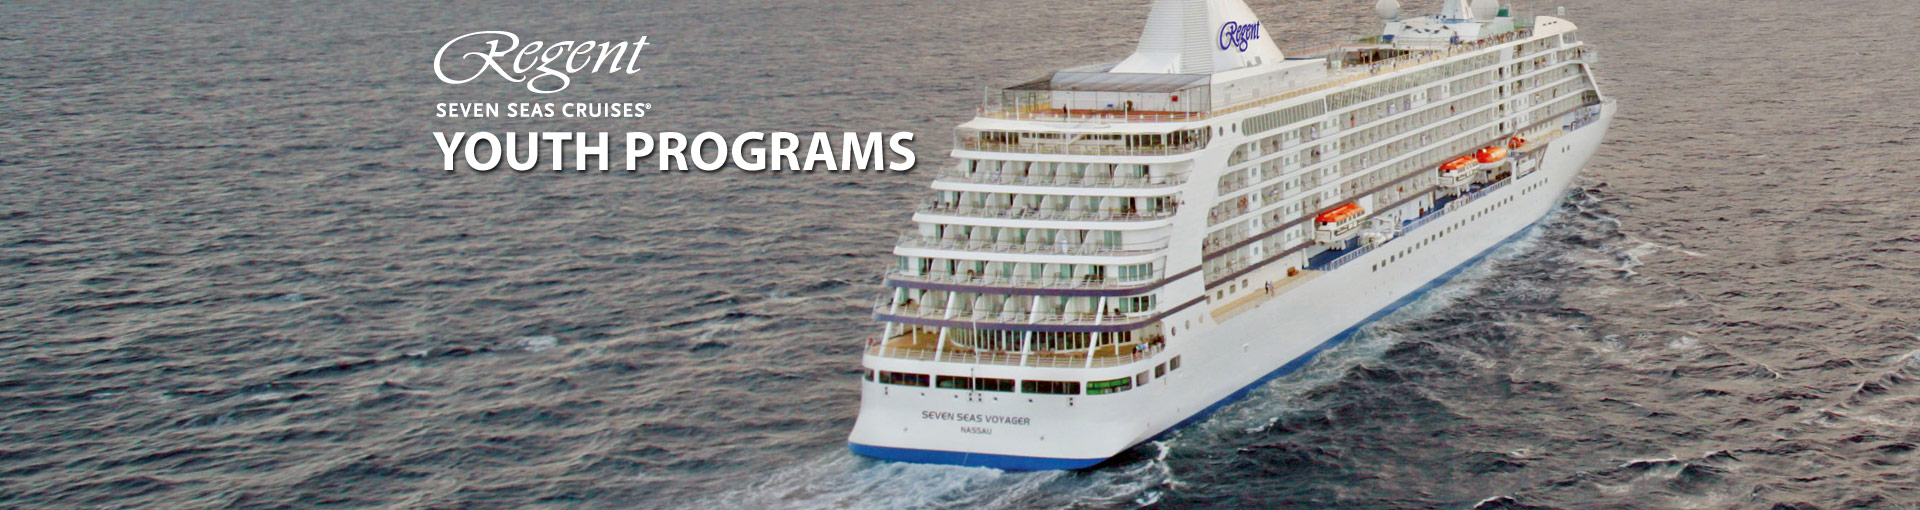 Regent Seven Seas Cruises Youth Programs